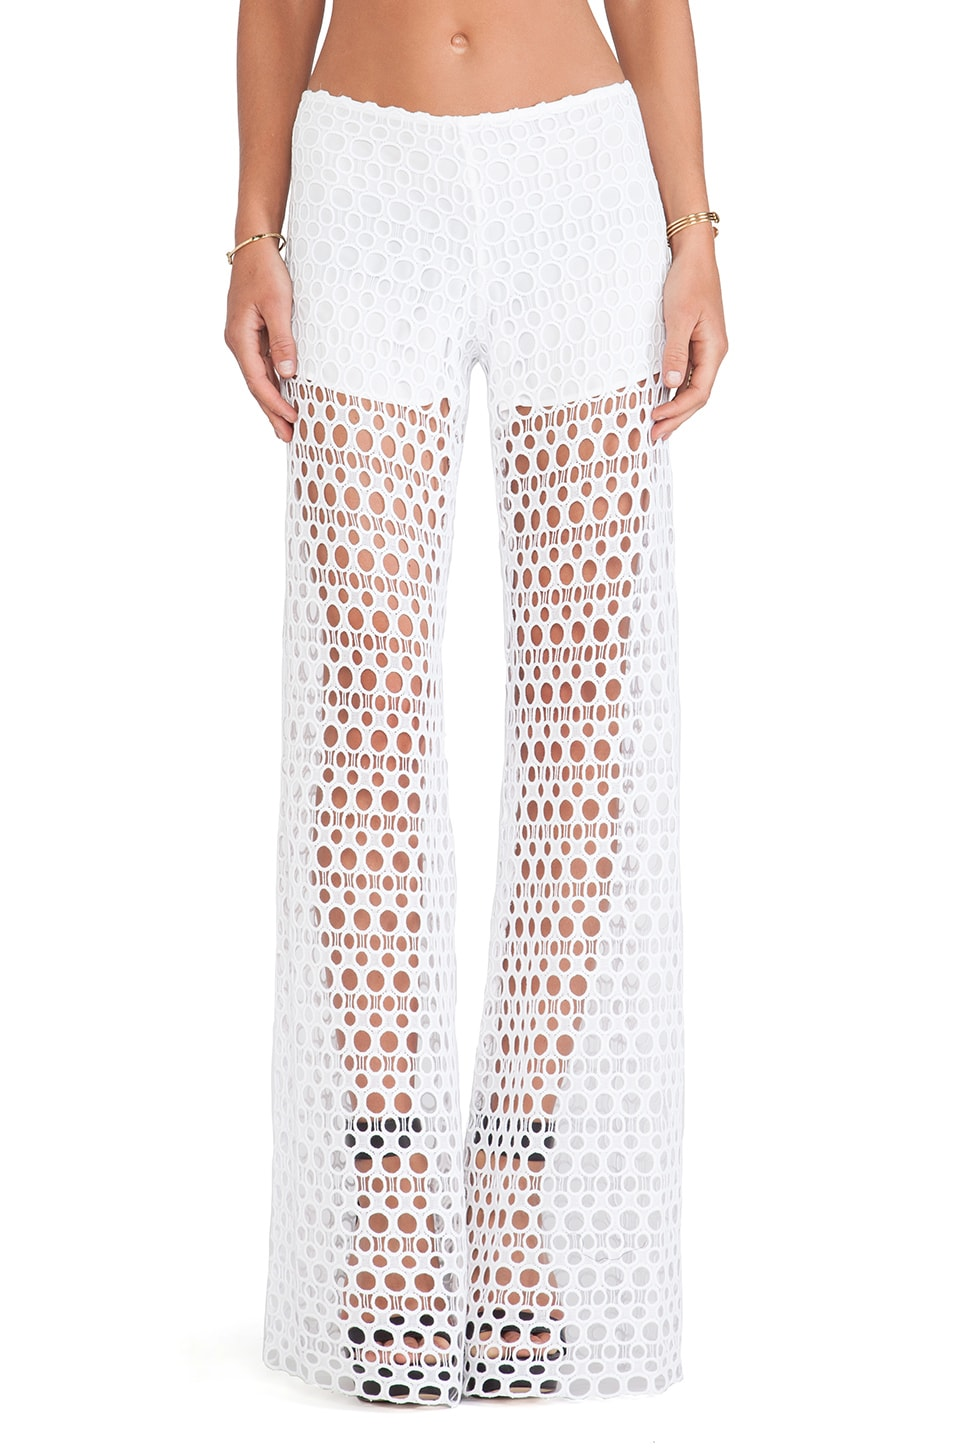 Alexis Madrid Wide Leg Crochet Pants in Ecliptic White